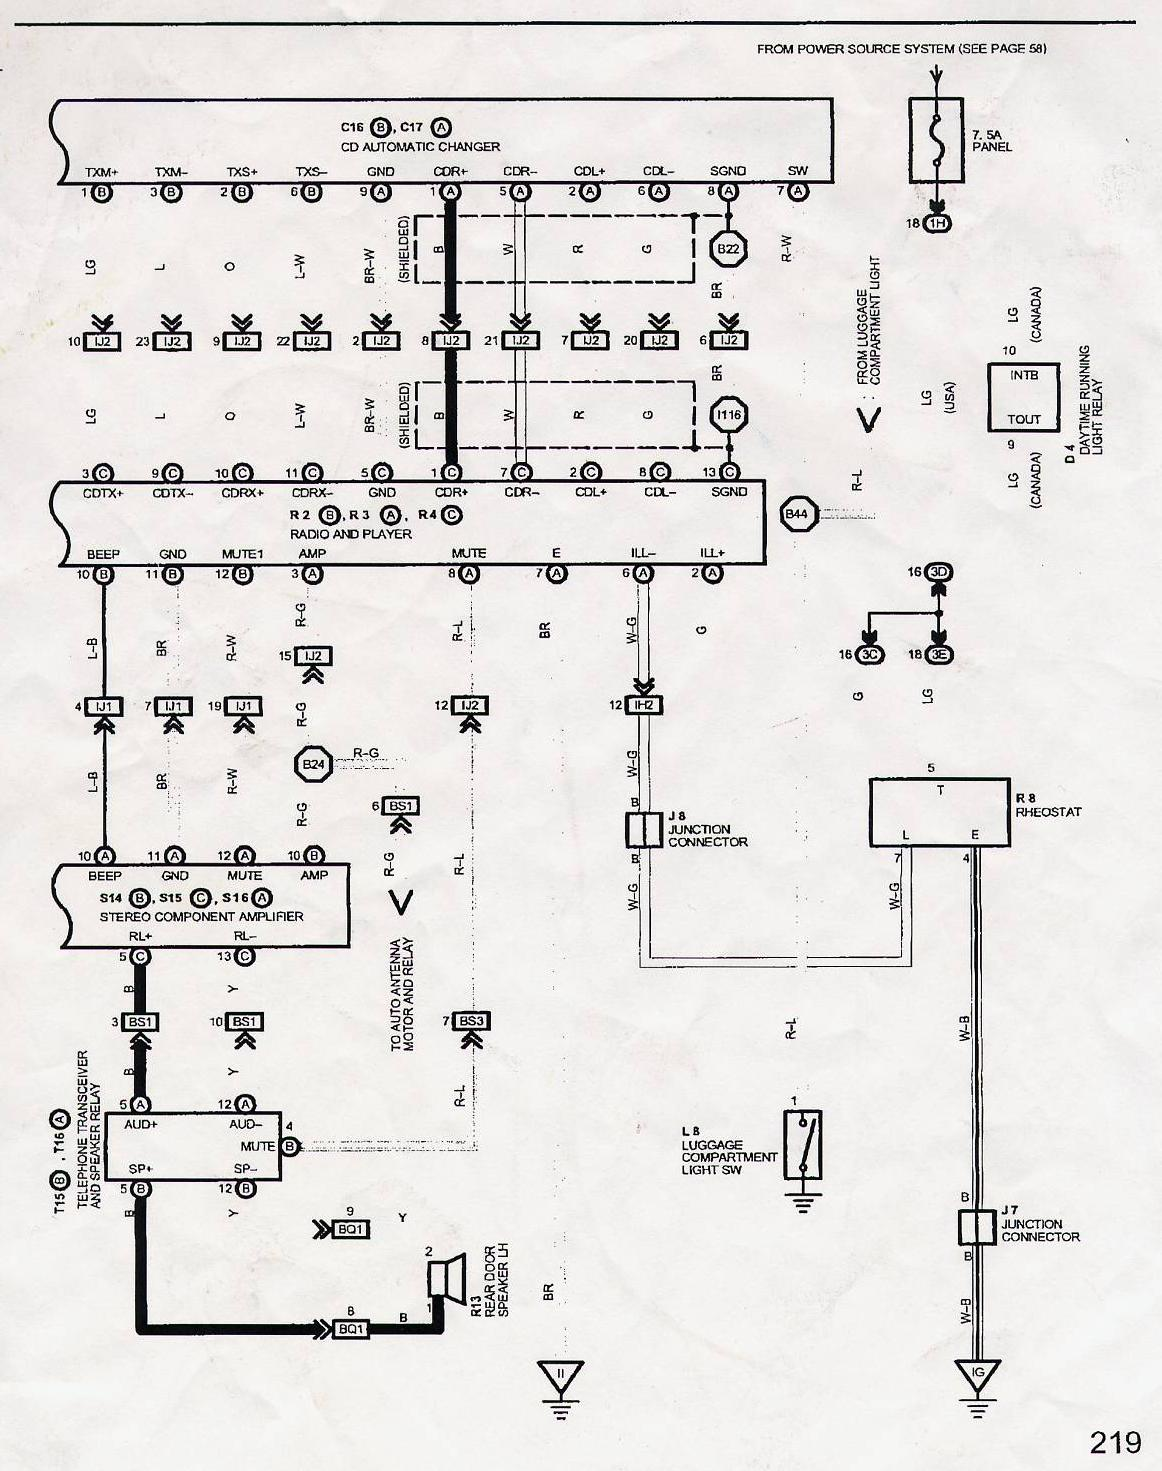 1 16 audio jack wiring diagram